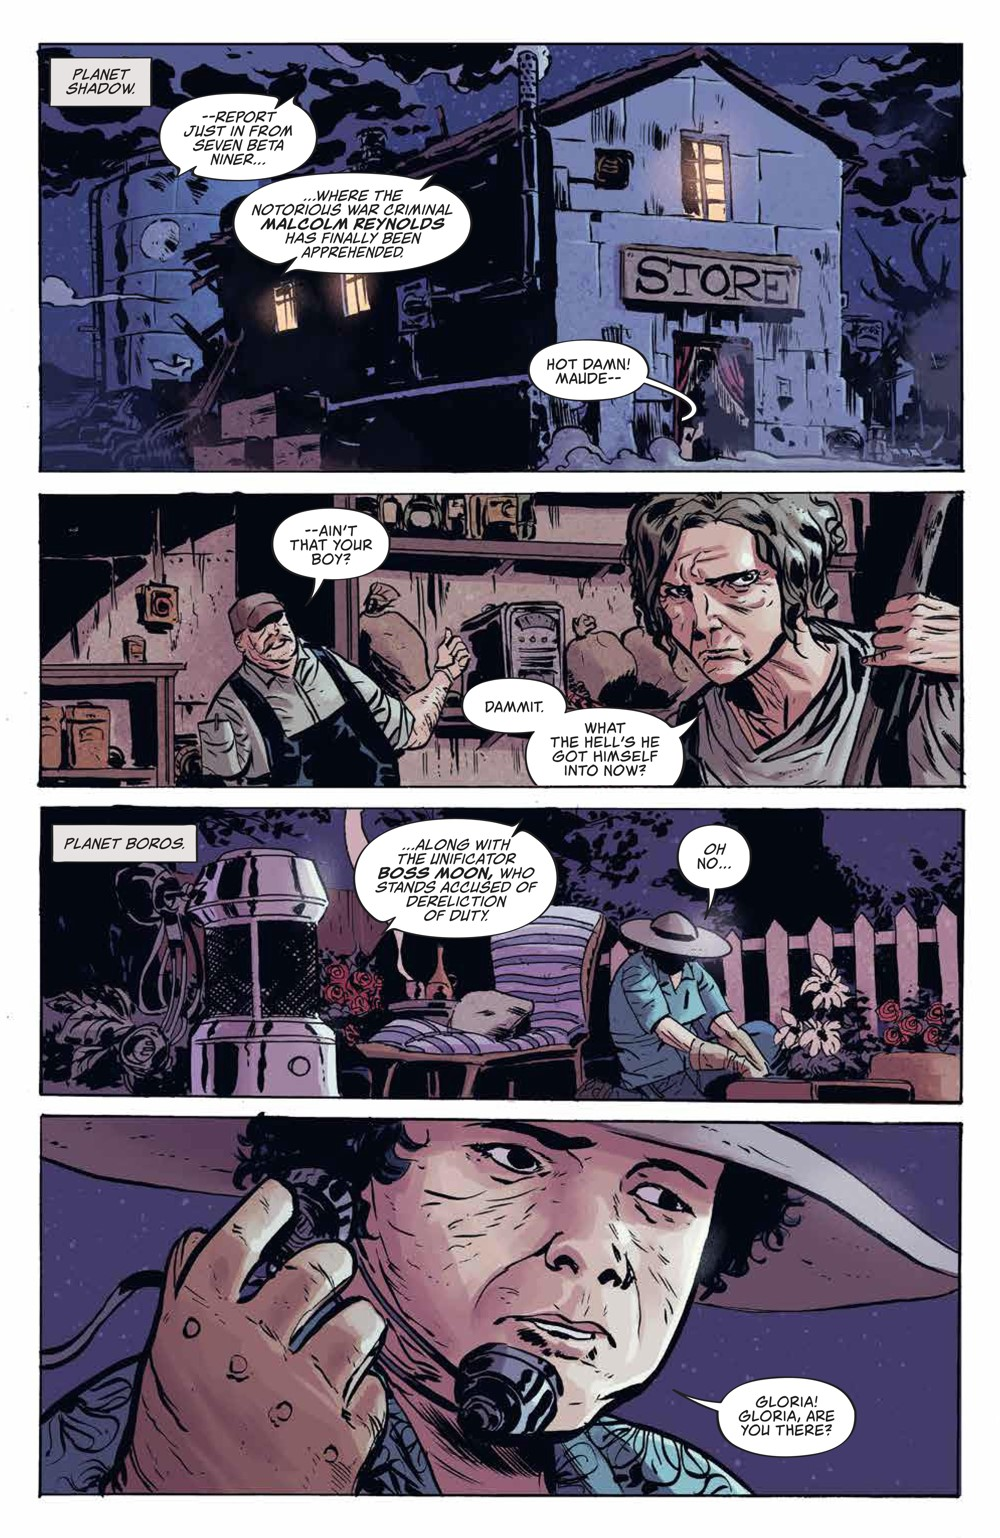 Firefly_v3_SC_PRESS_9 ComicList Previews: FIREFLY THE UNIFICATION WAR VOLUME 3 TP